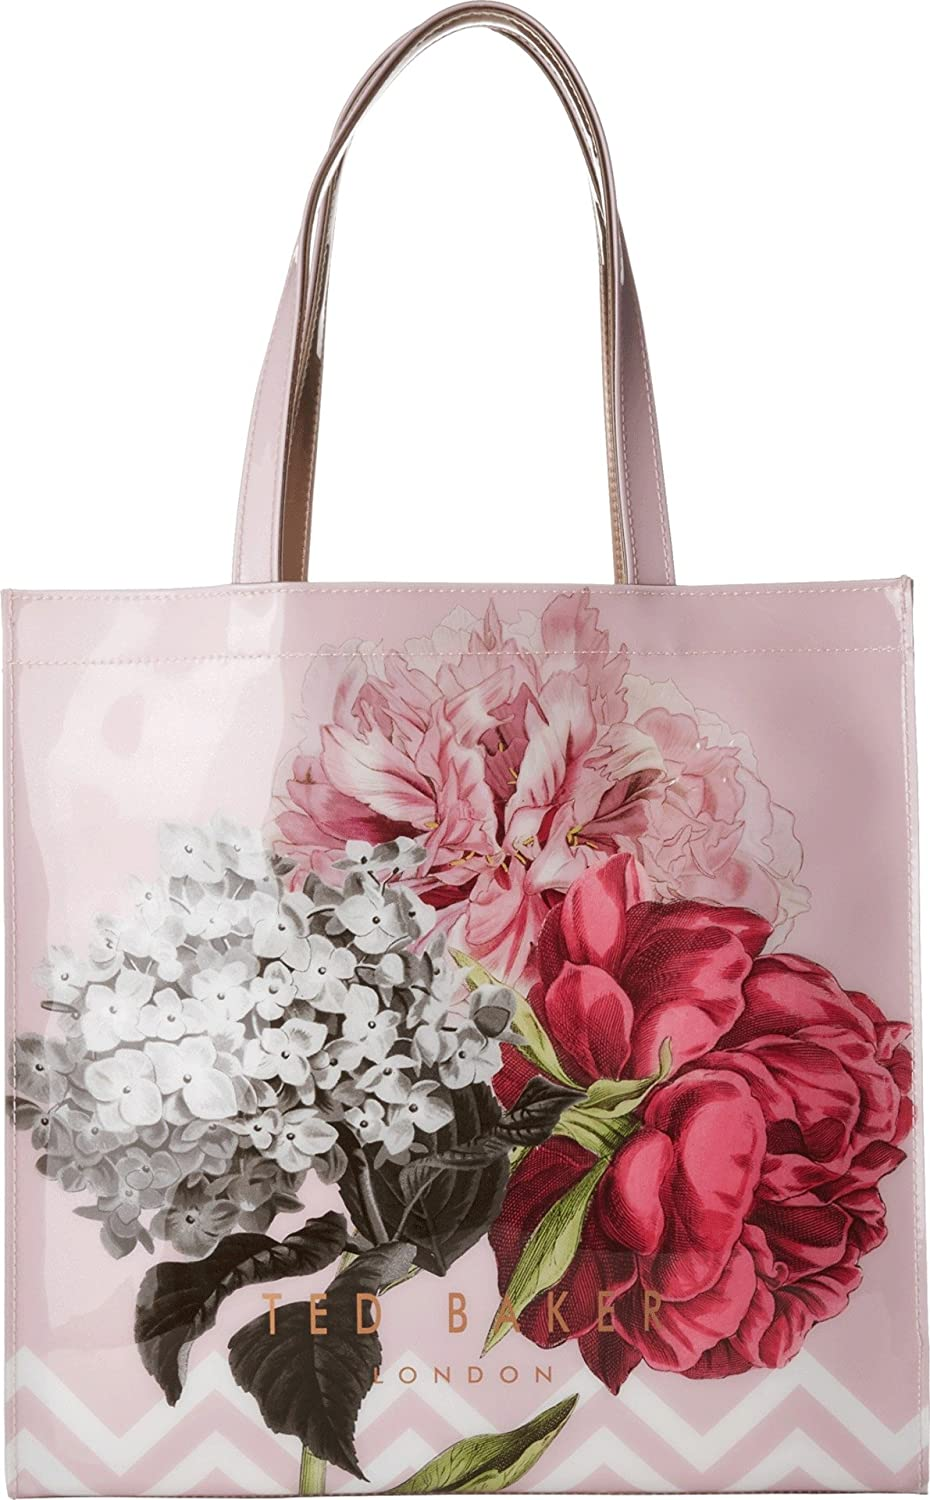 8ce3bddde Ted Baker Emelcon Palace Gardens Large Icon Bag - LARGE